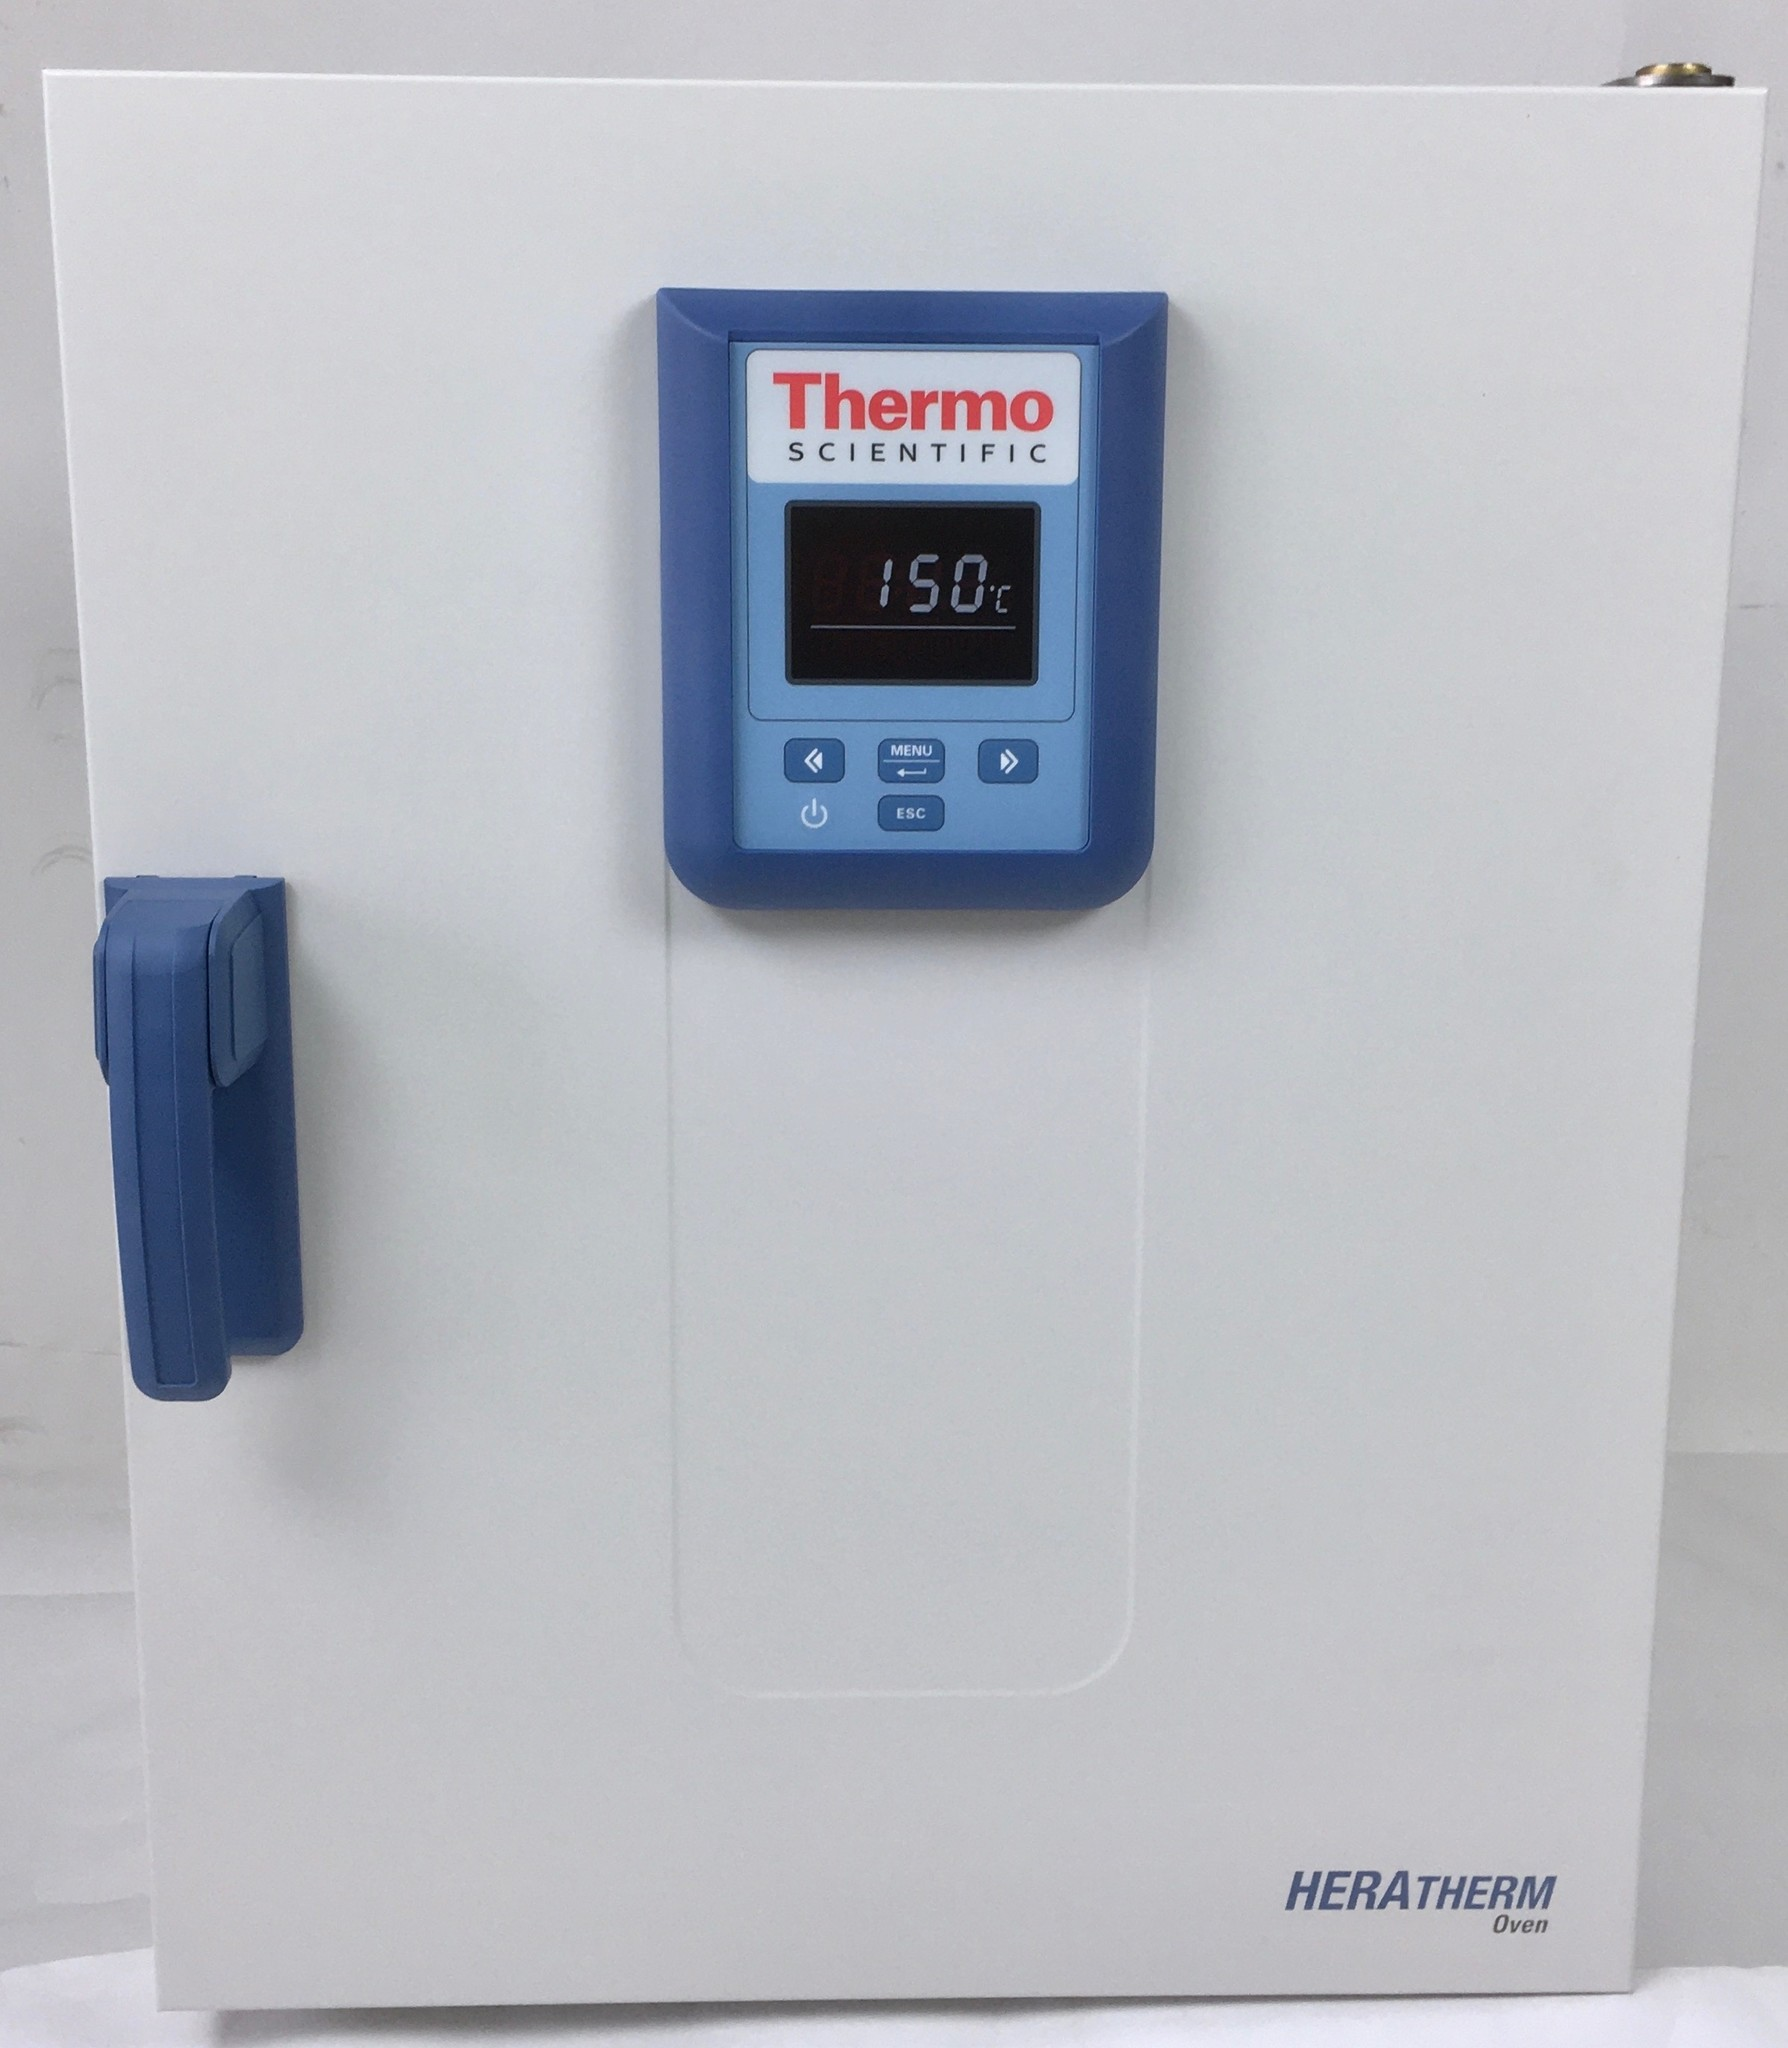 Thermo Scientific Thermo Heratherm OMS 60 Oven - Mechanical Convection